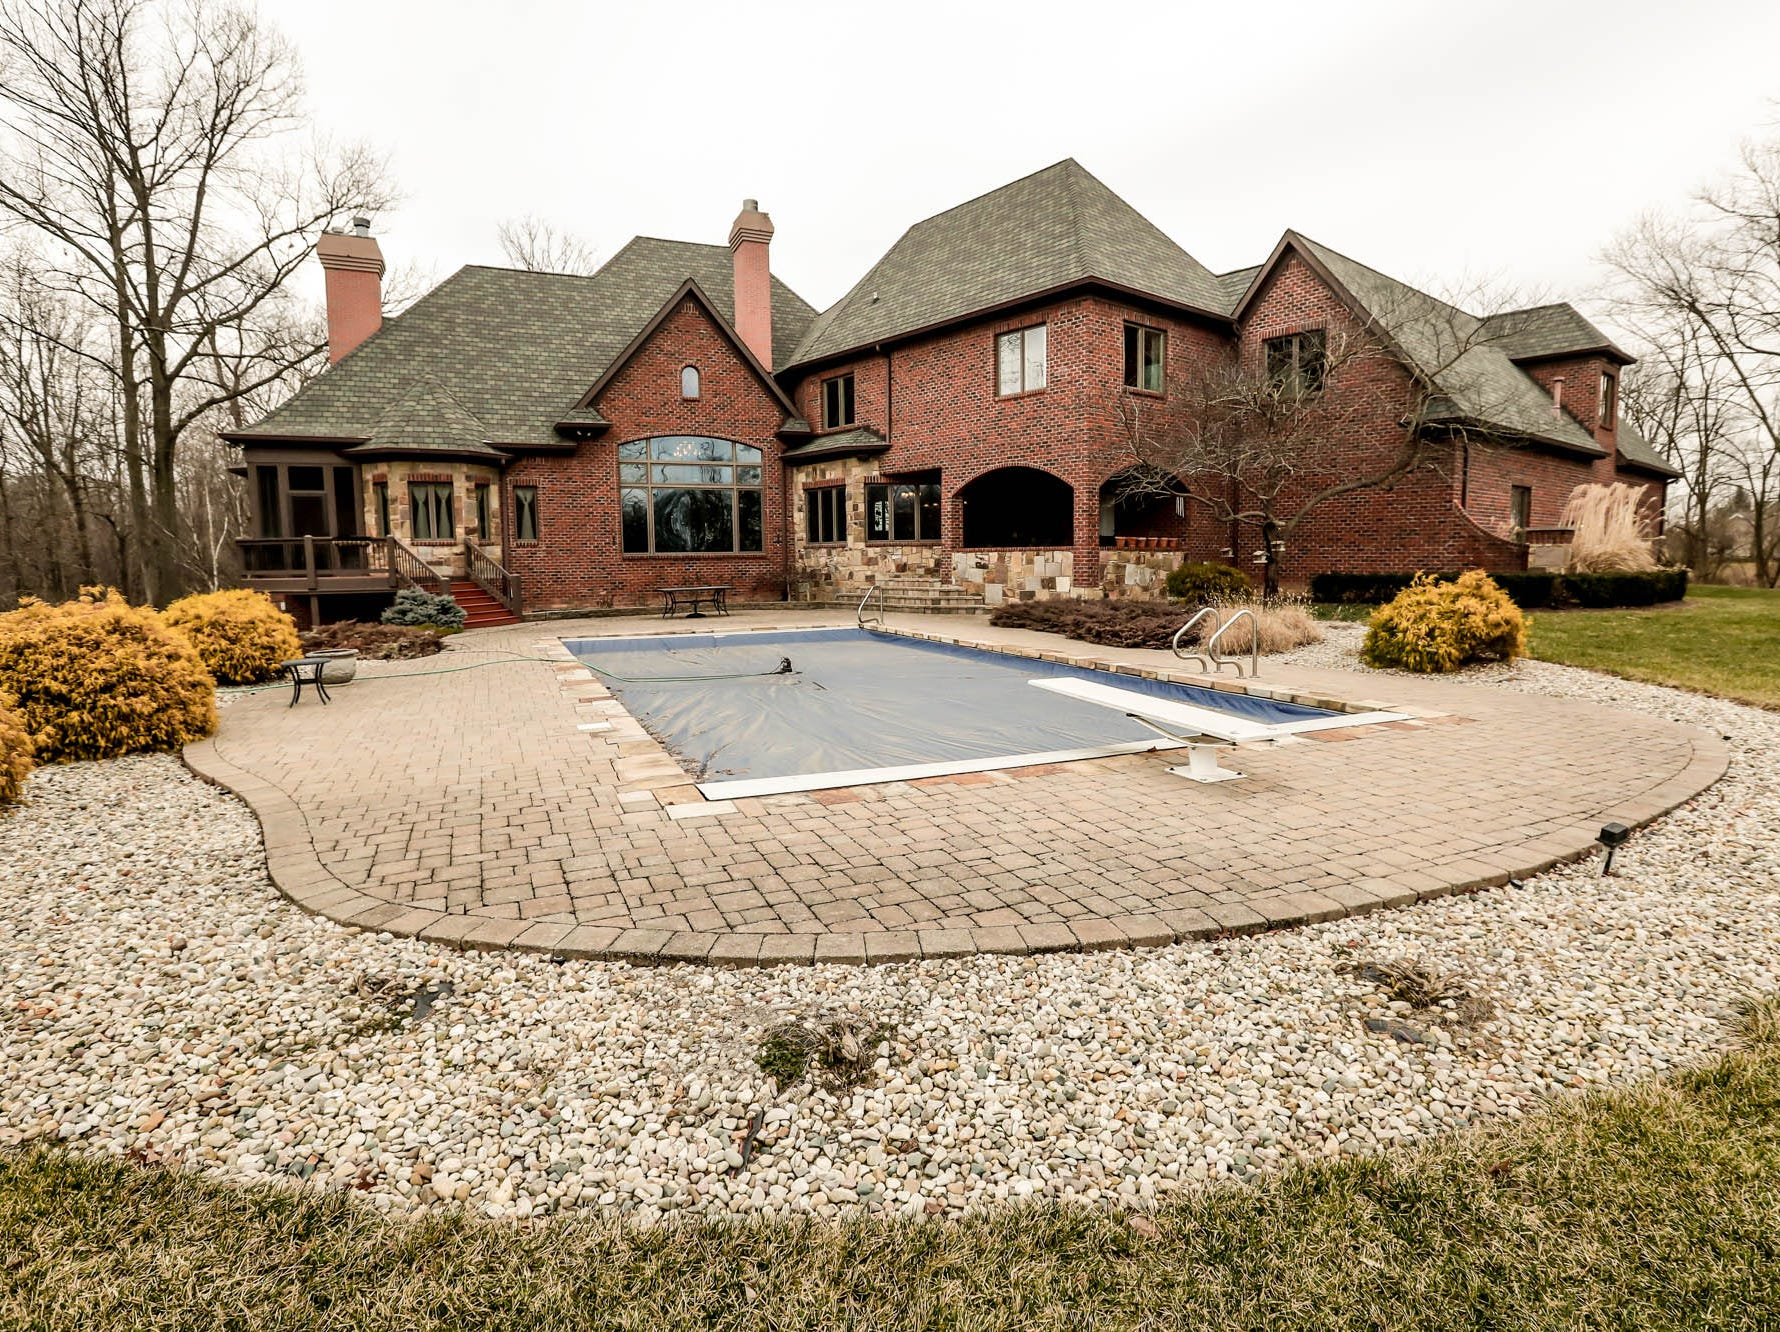 An in-ground saltwater pool sits behind a traditional style $2m home with elements of French country and Tuscan influence up for sale in Bargersville Ind. on Wednesday, Jan. 9, 2019. The house sits on 8.1 acres.